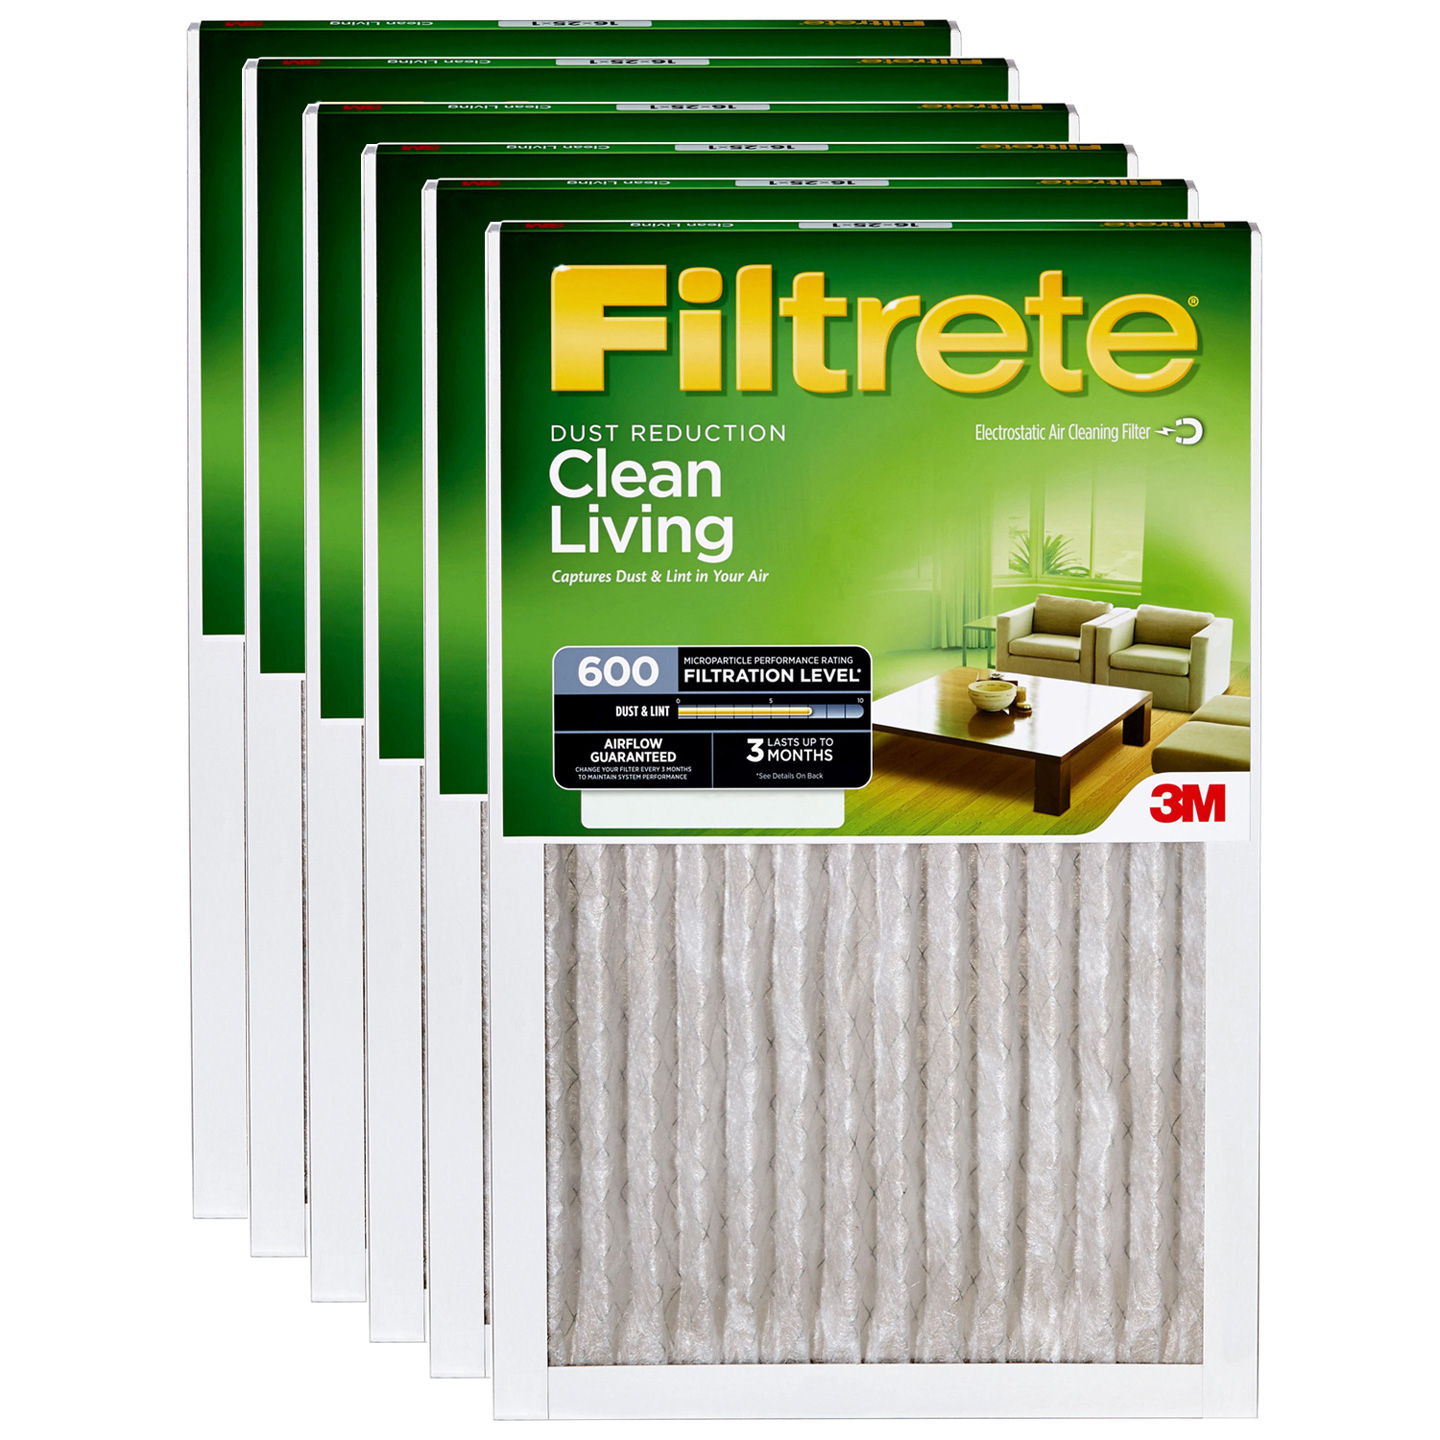 14x24x1 3M Filtrete Dust and Pollen Filter (6-Pack) FILTRETE_DUST_14x24x1_6_PACK